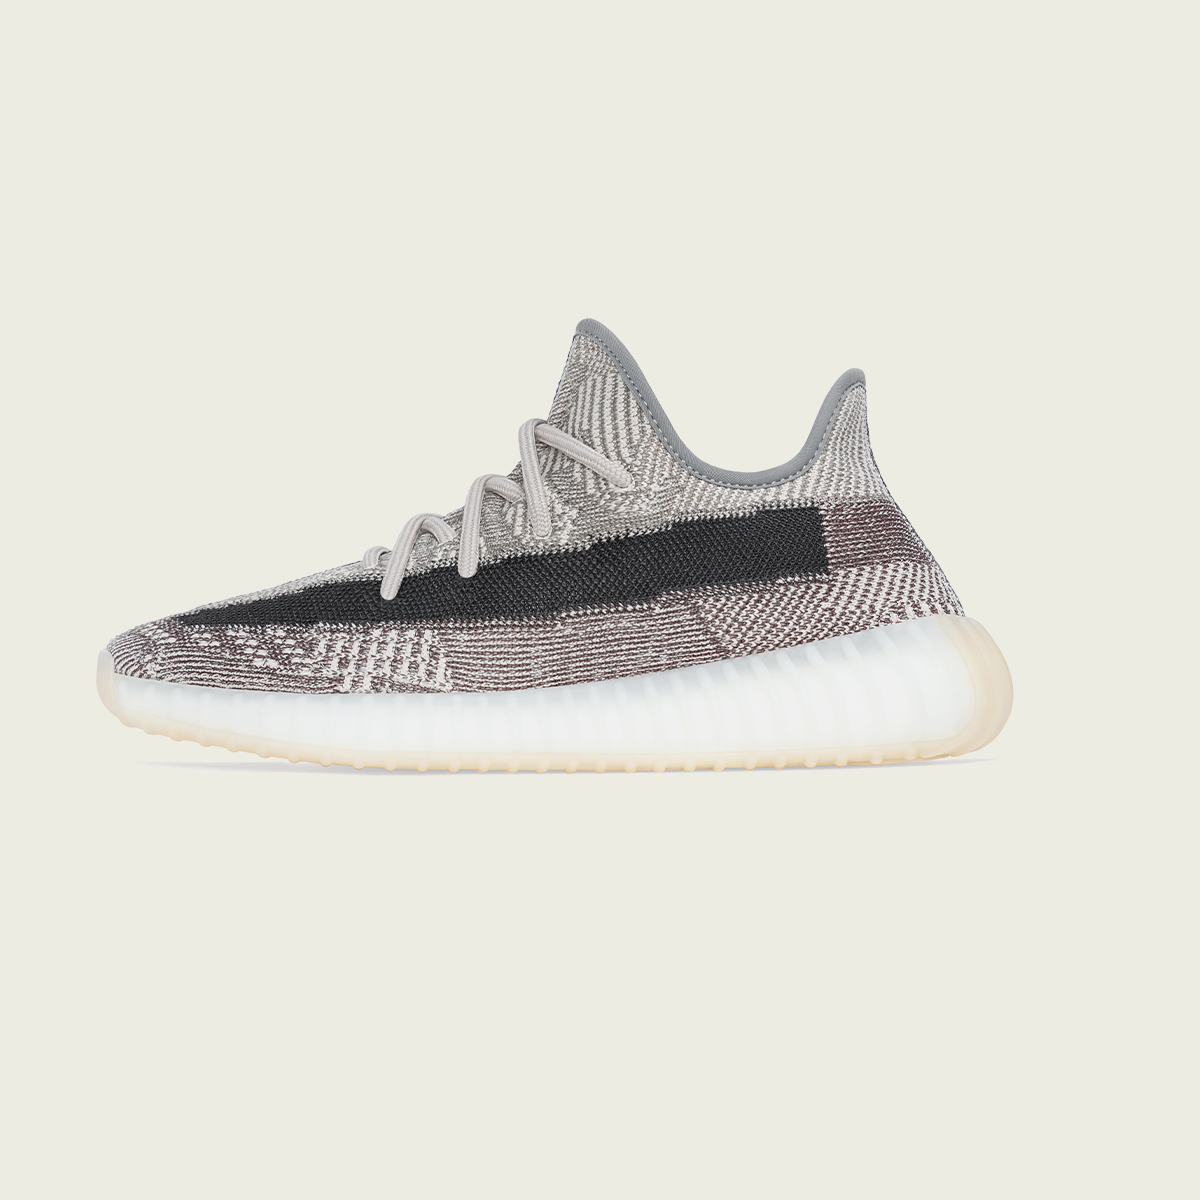 Enter the raffle for the adidas YEEZY BOOST 350 V2 'Zyon'